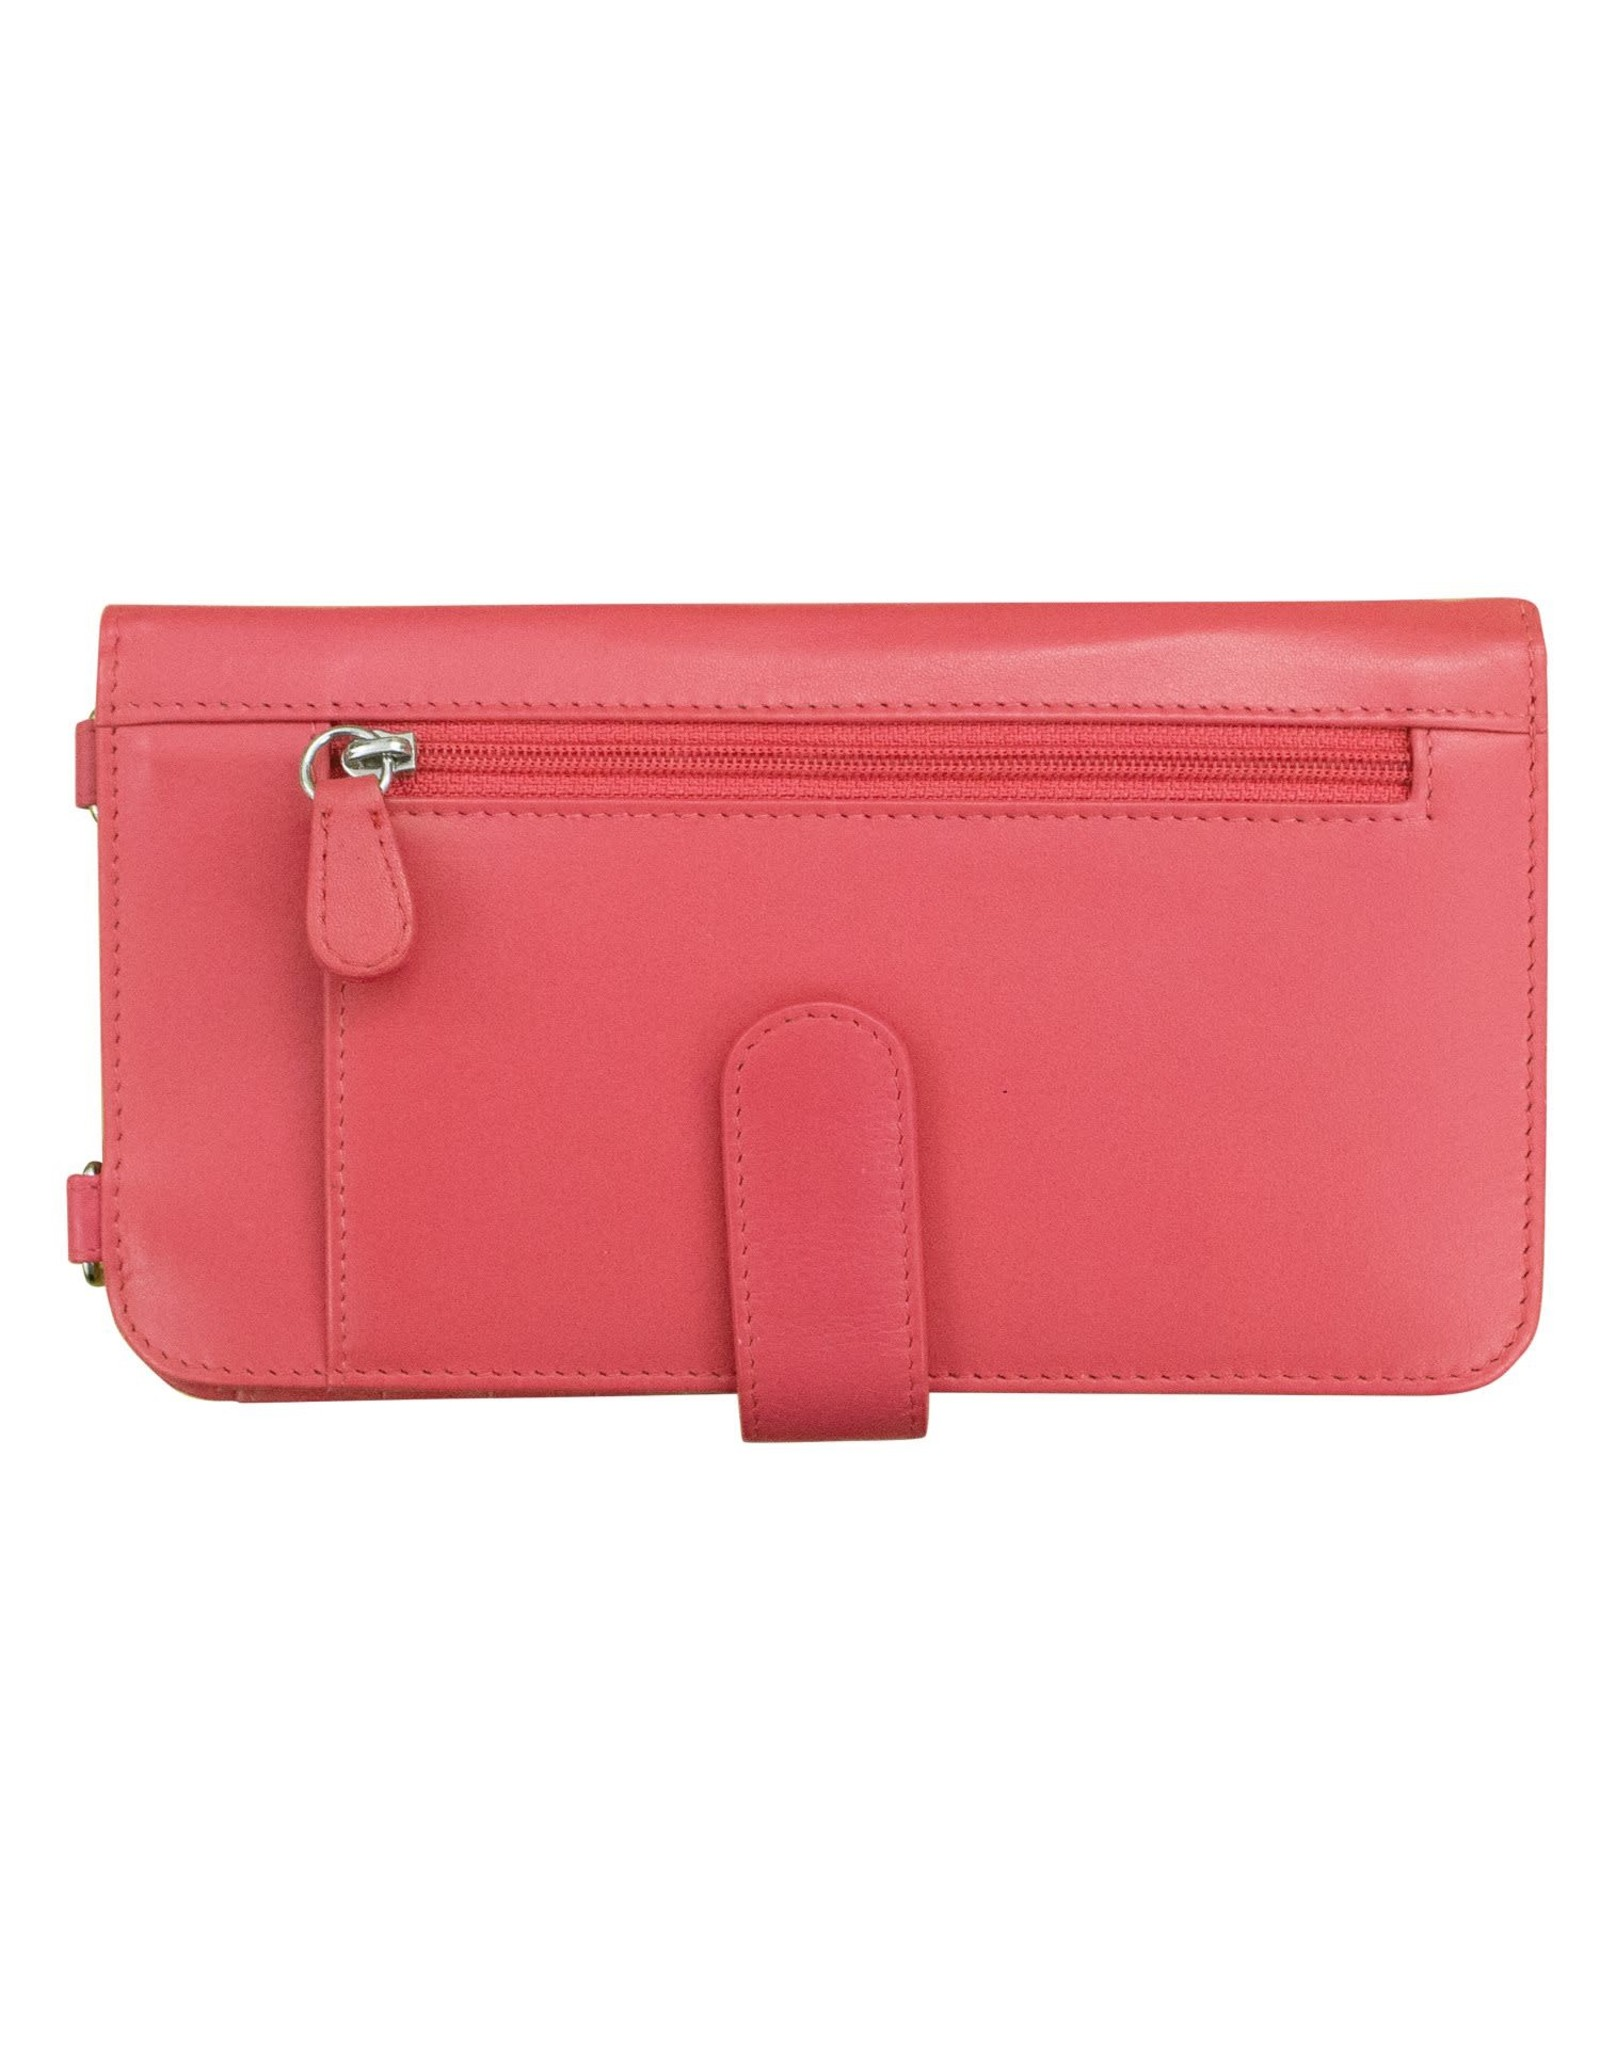 Leather Handbags and Accessories 6363 Hot Pink - RFID Organizer Crossbody